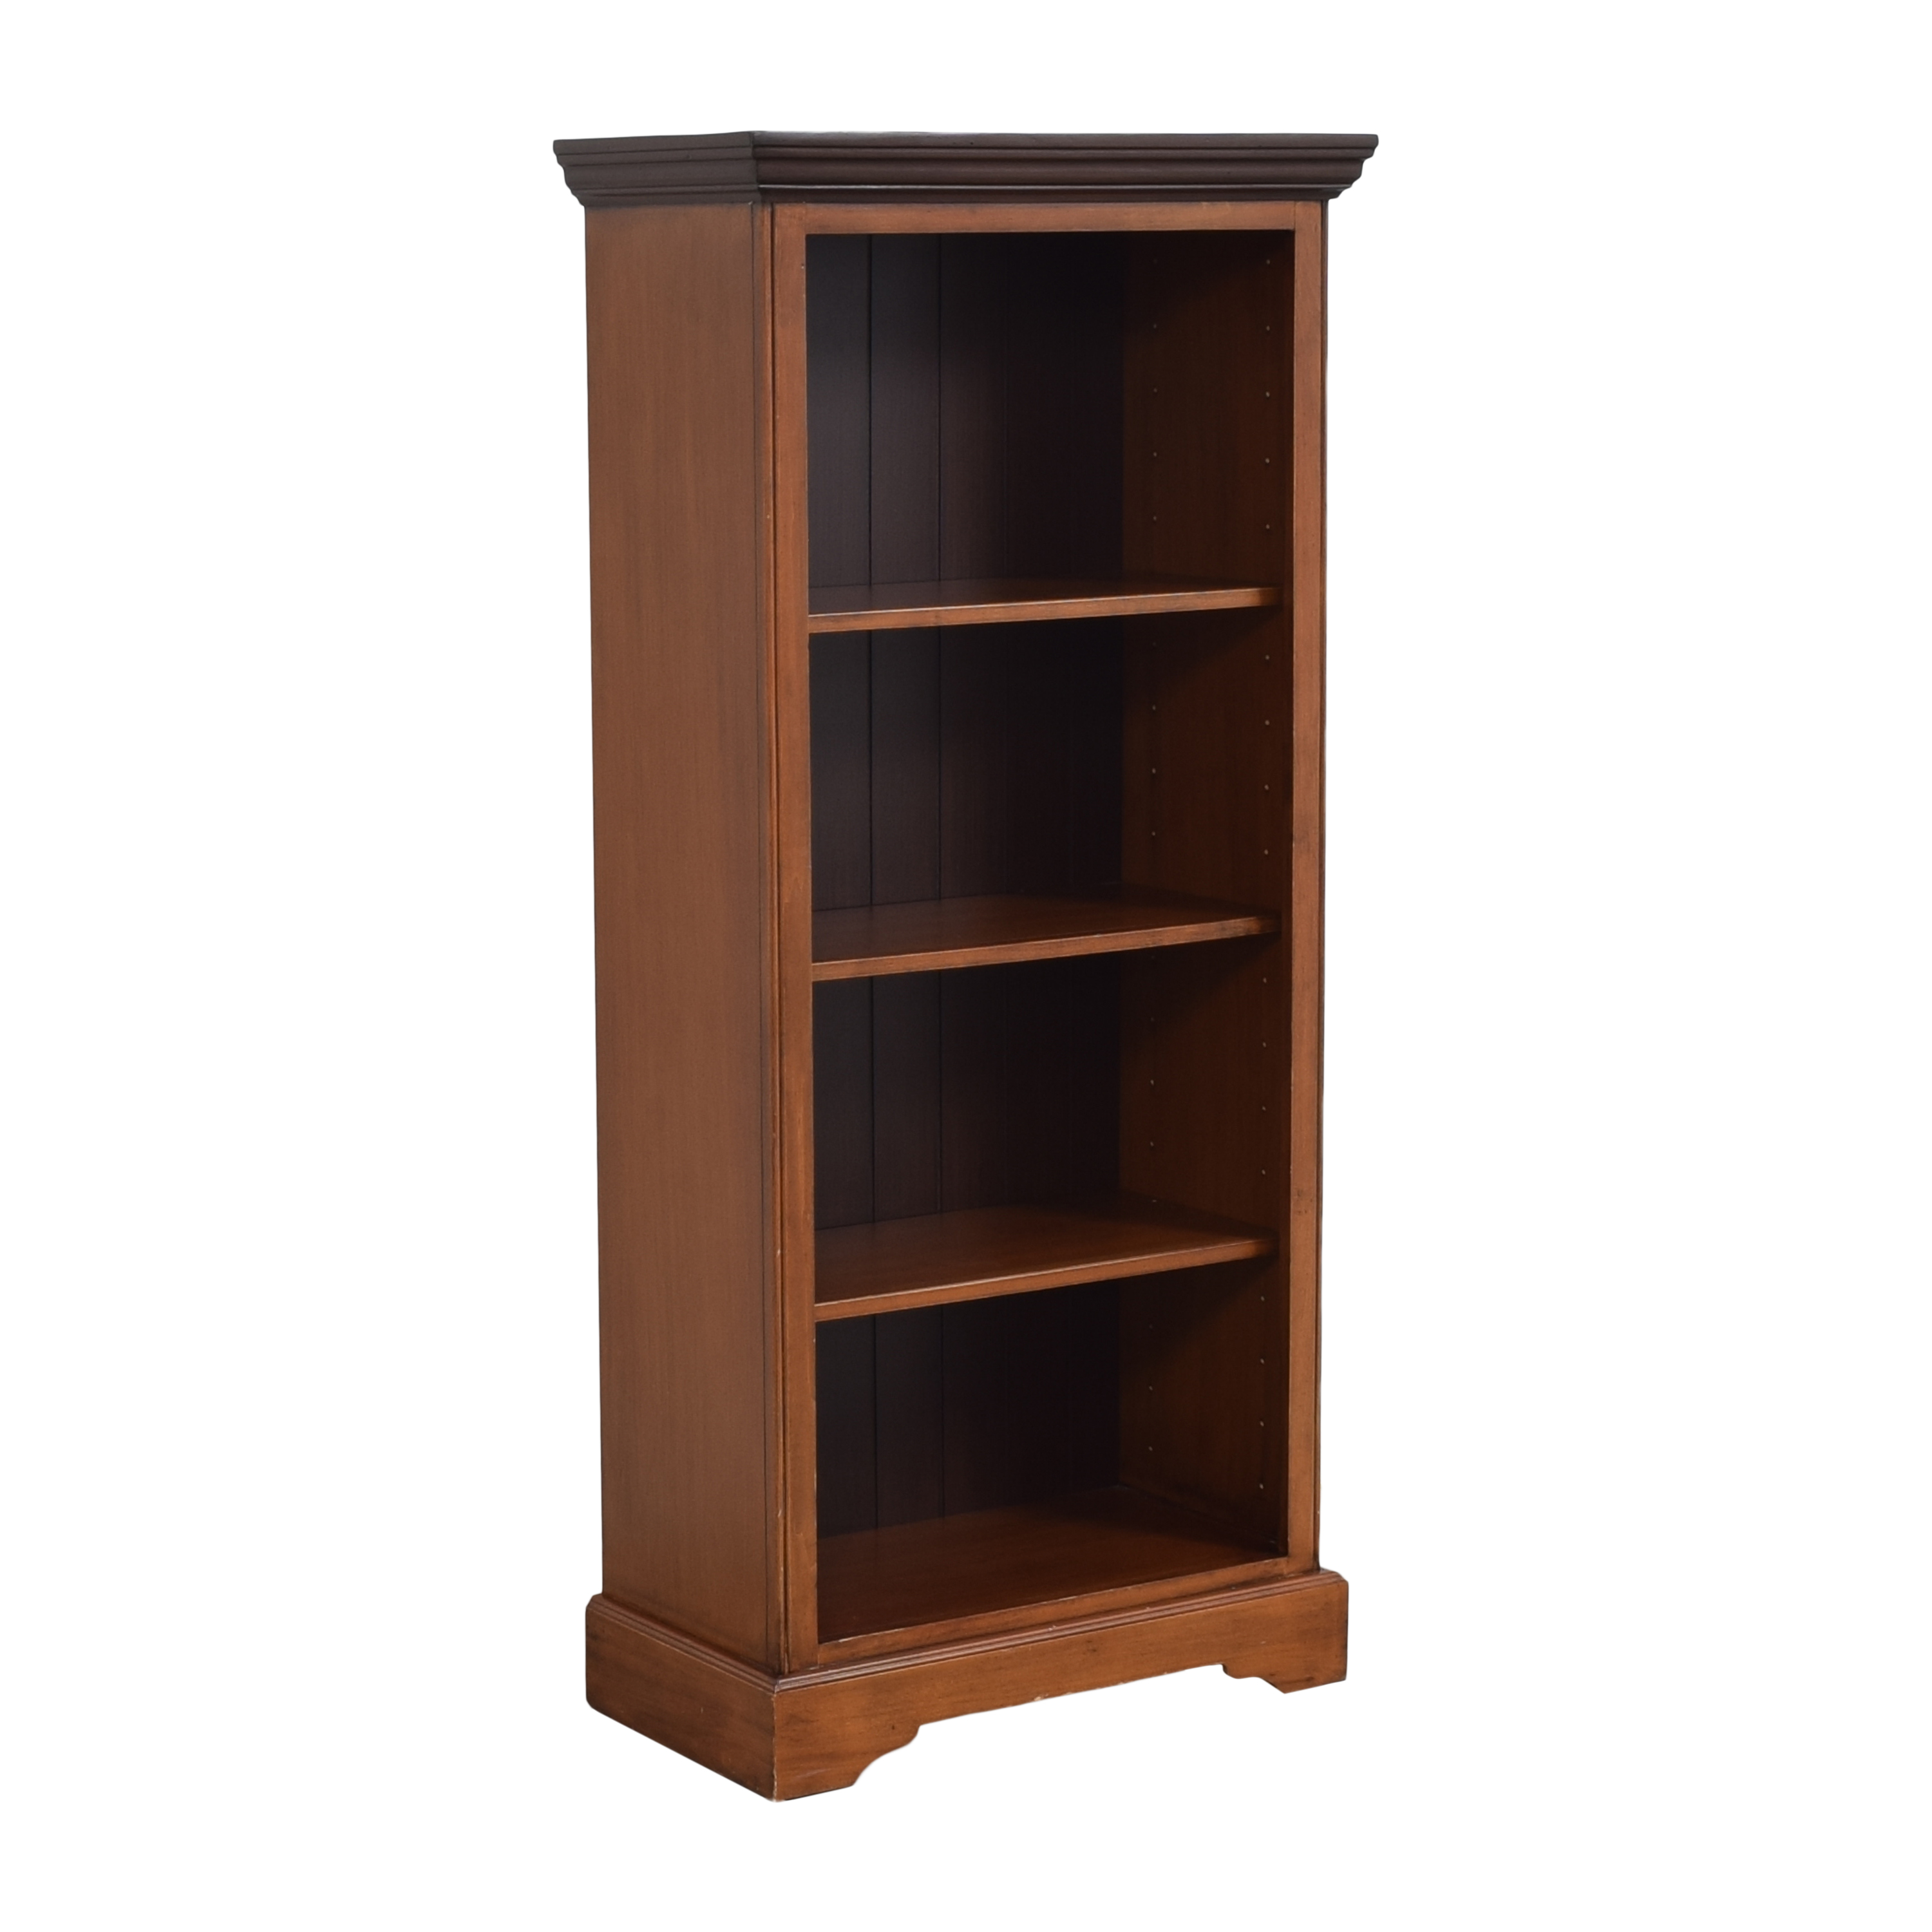 Country Willow Country Willow Custom Bookcase Bookcases & Shelving